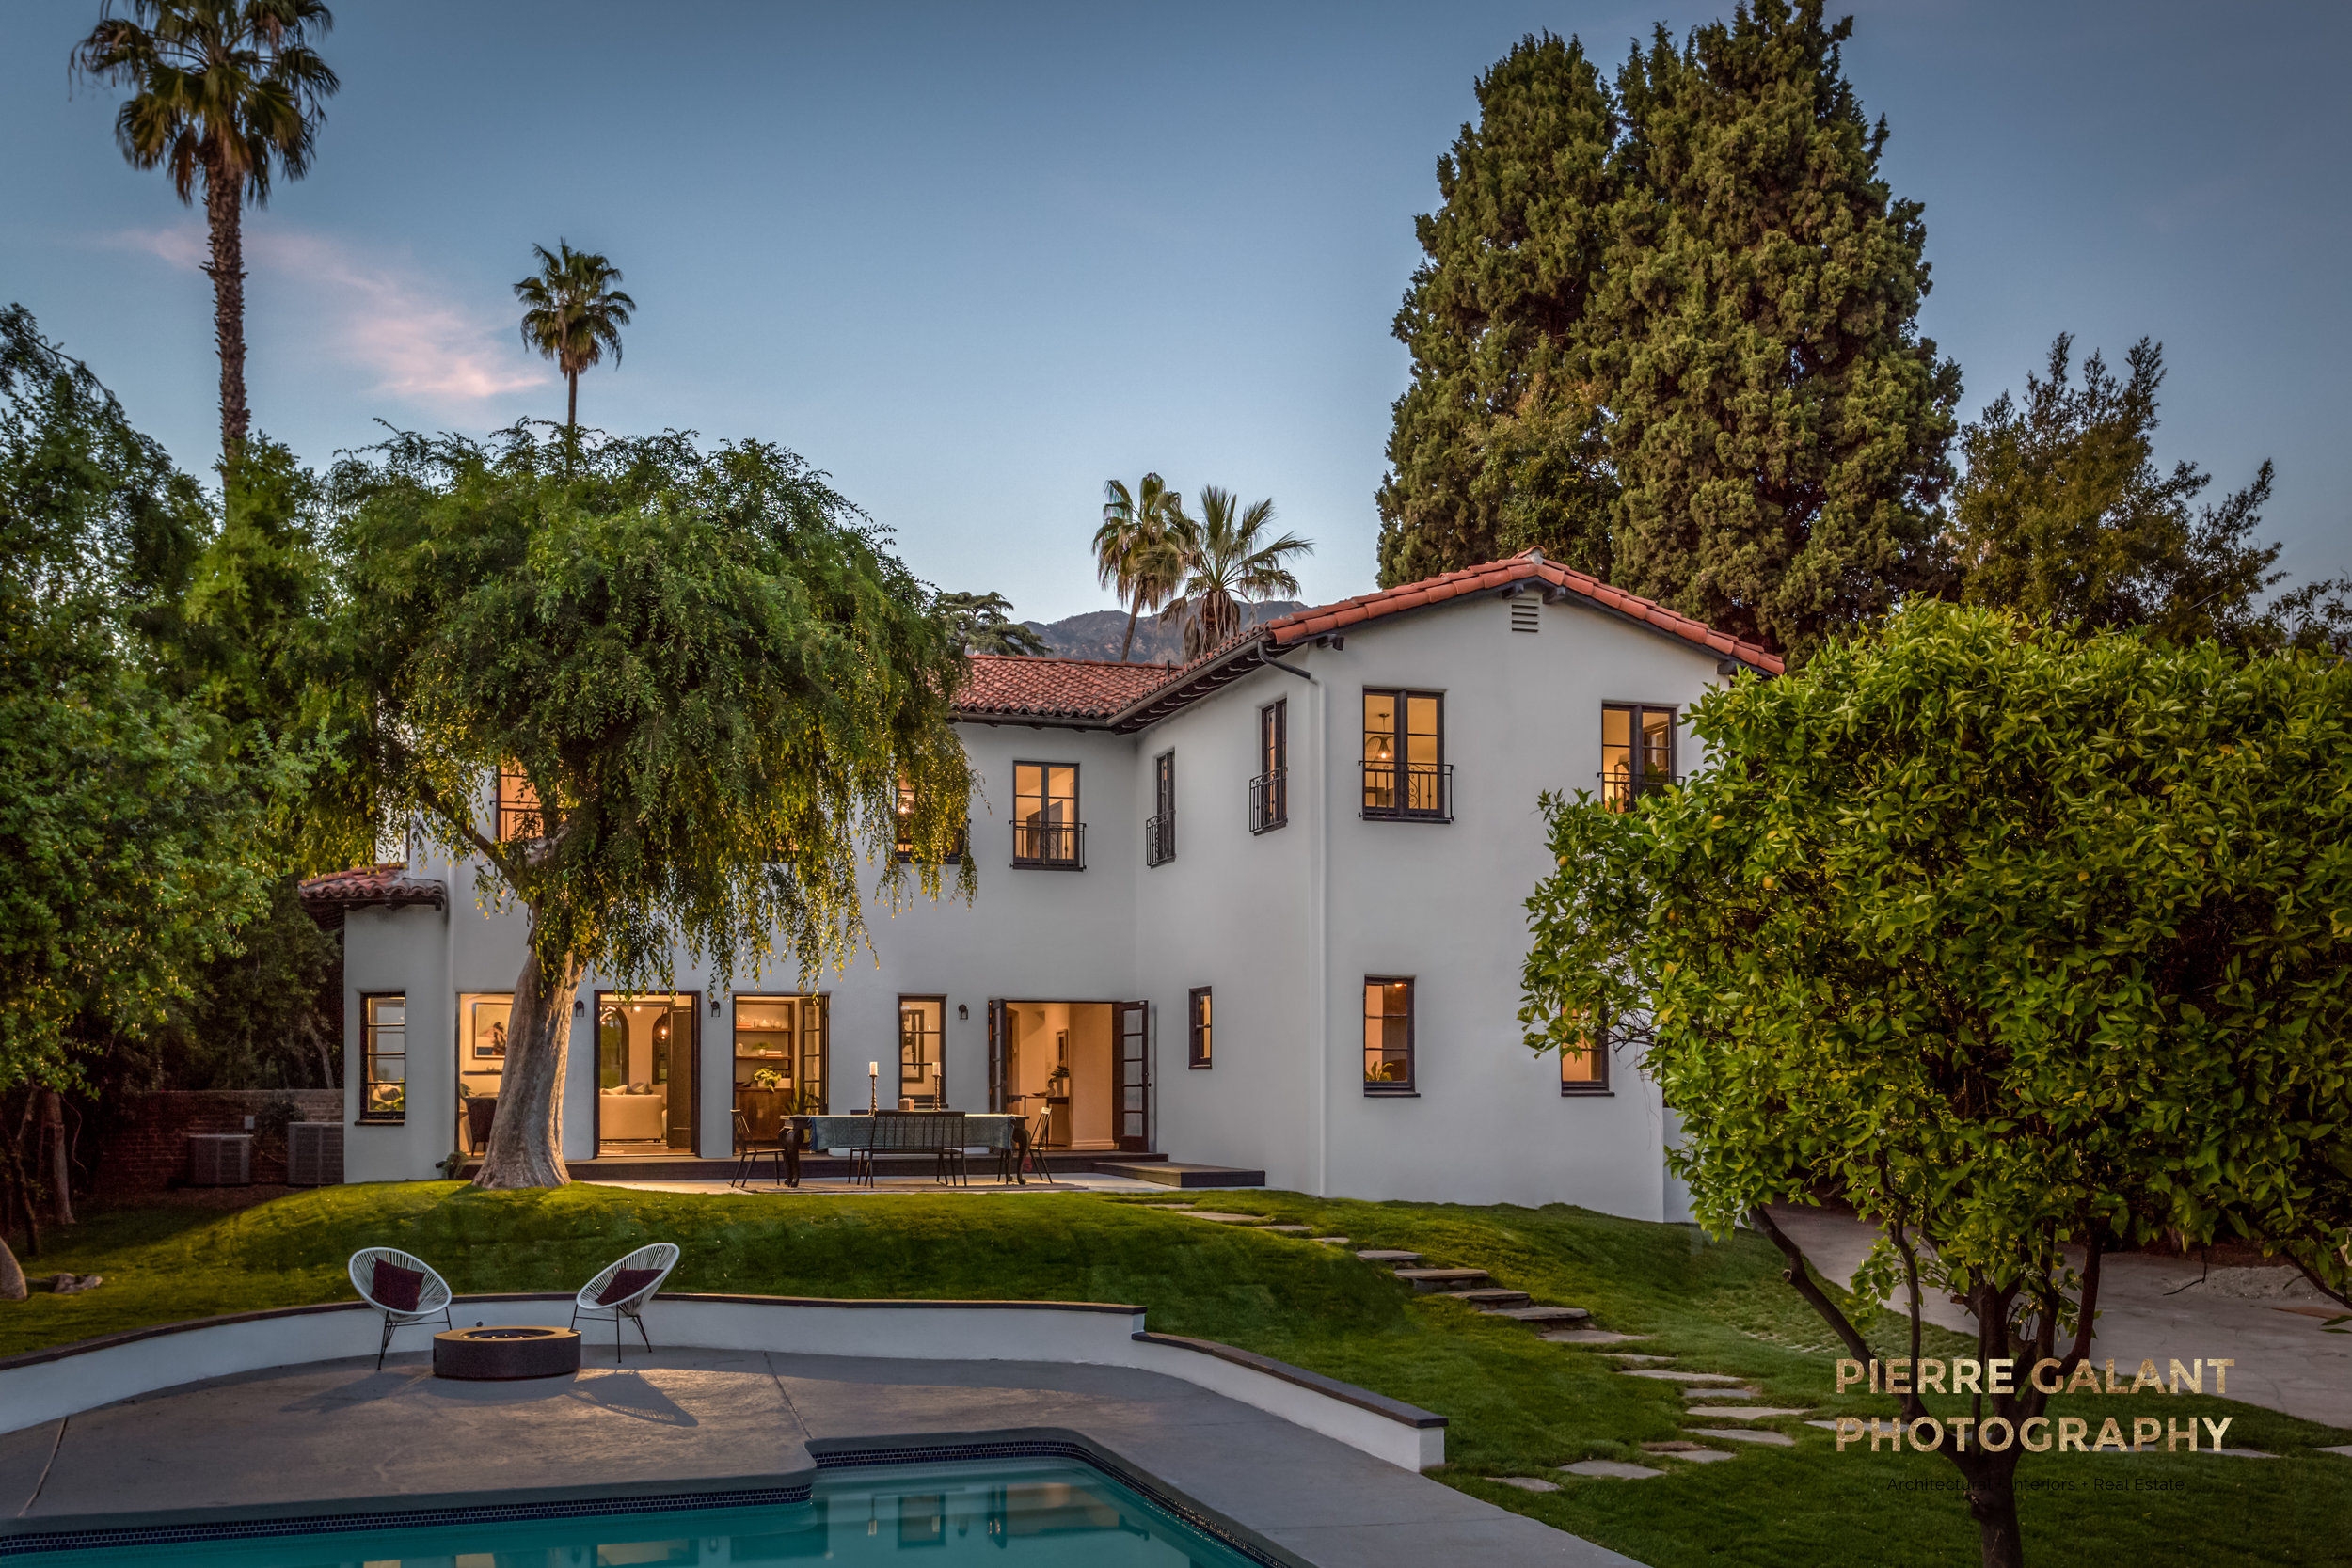 Ah! The Med Mansion! A really cool architectural renovation in Altadena. The pool had been a much later addition to the property and didn't really fit with the style of the home so I decided to show only a sliver of it, letting the viewers imagination take over.